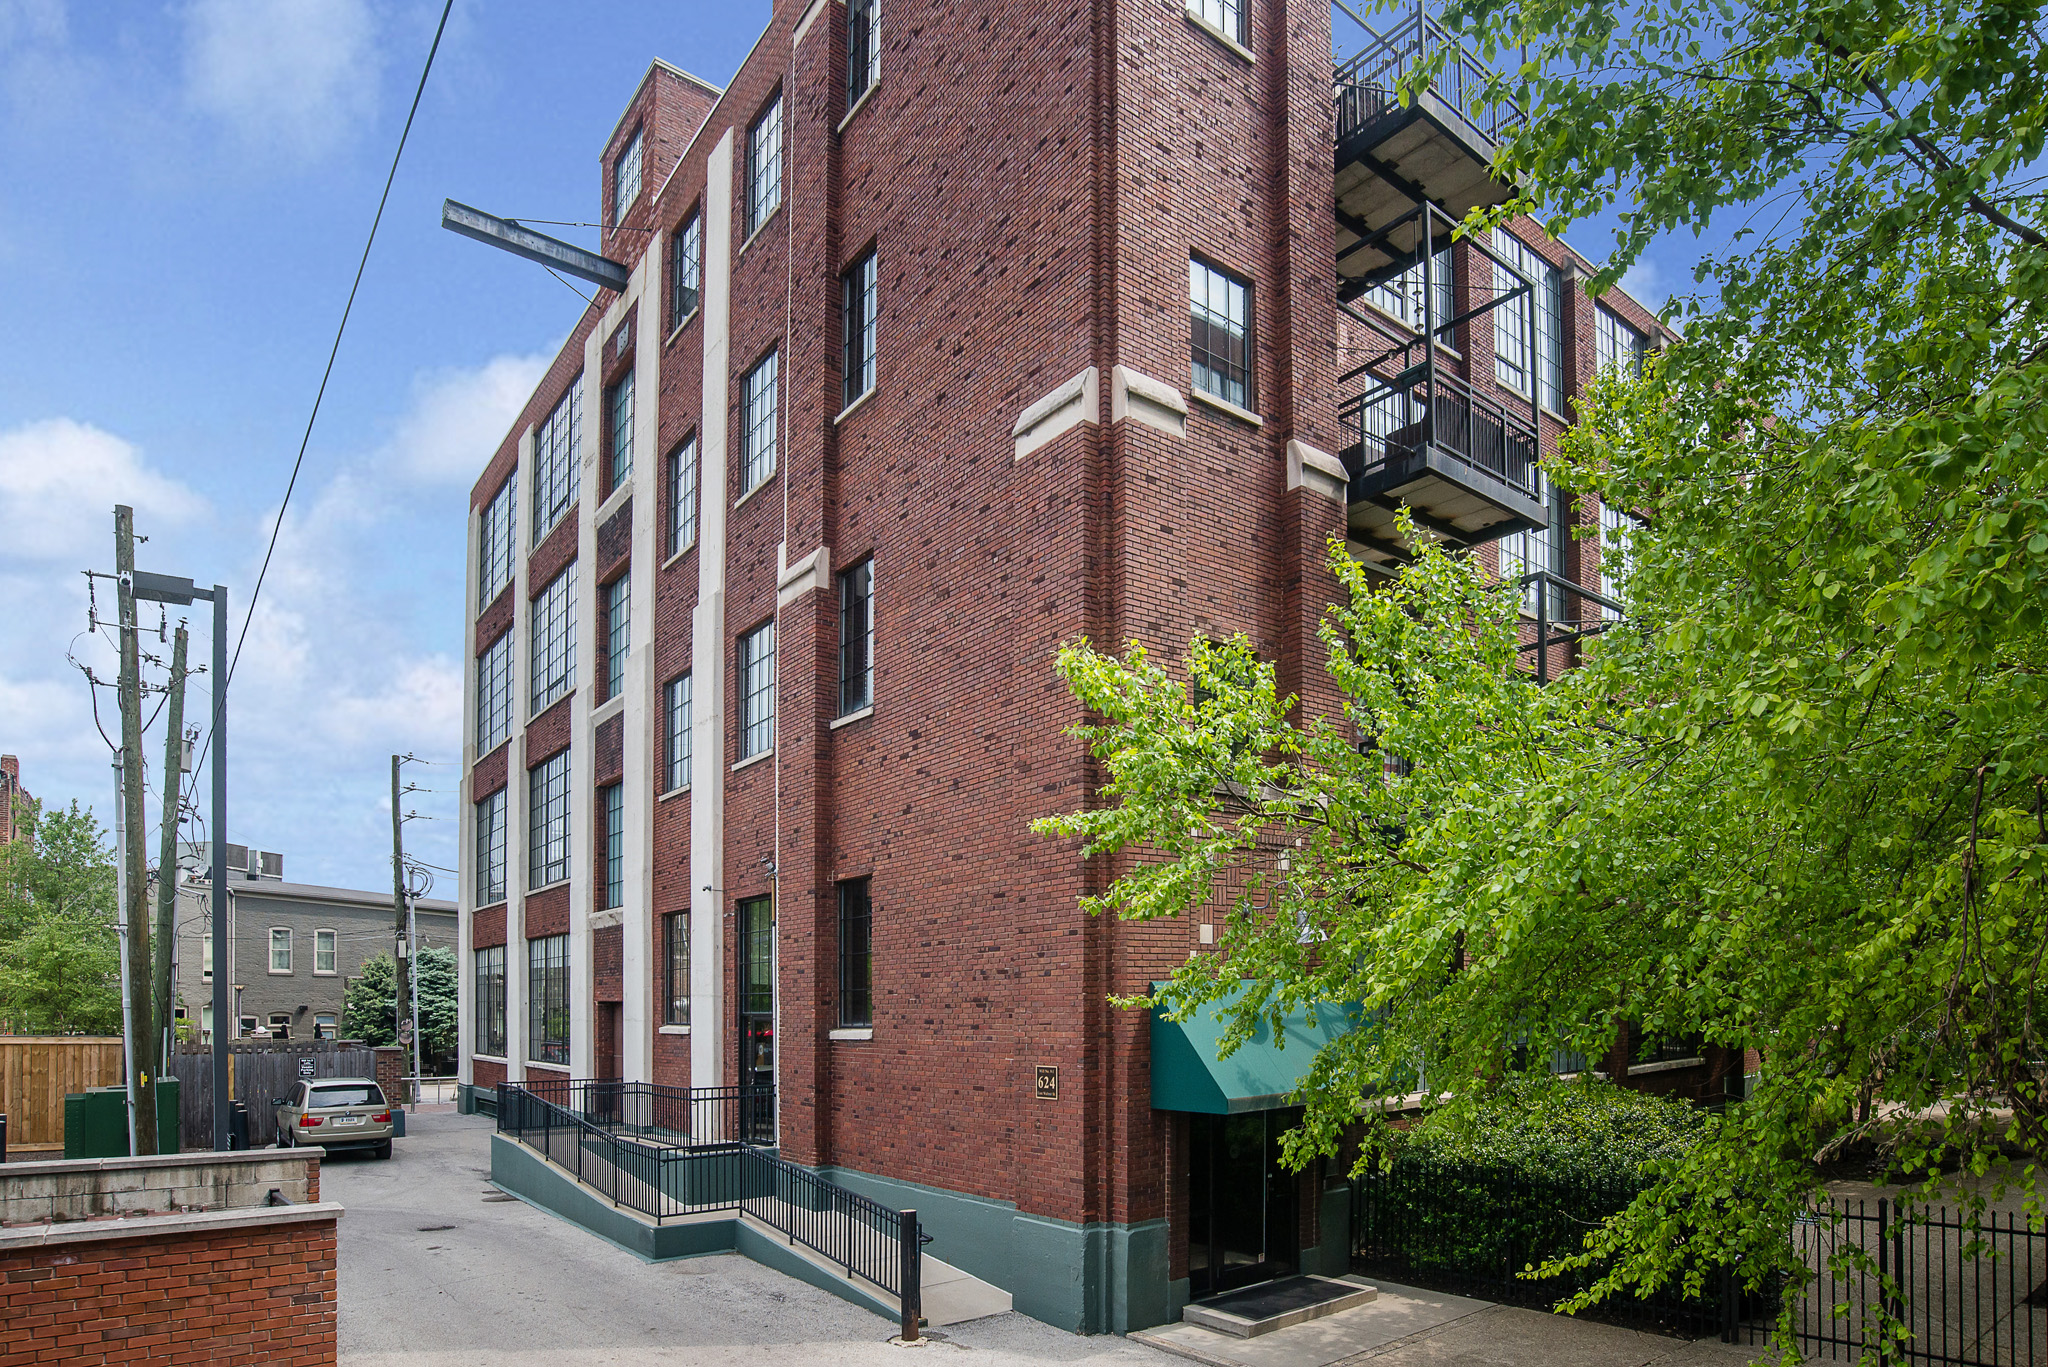 624 E Walnut Condo 46 Indpls IN 46204 Mill 9 Phase 1 - Mitch Rolsky with City Homes And Lifestyle (1 e)